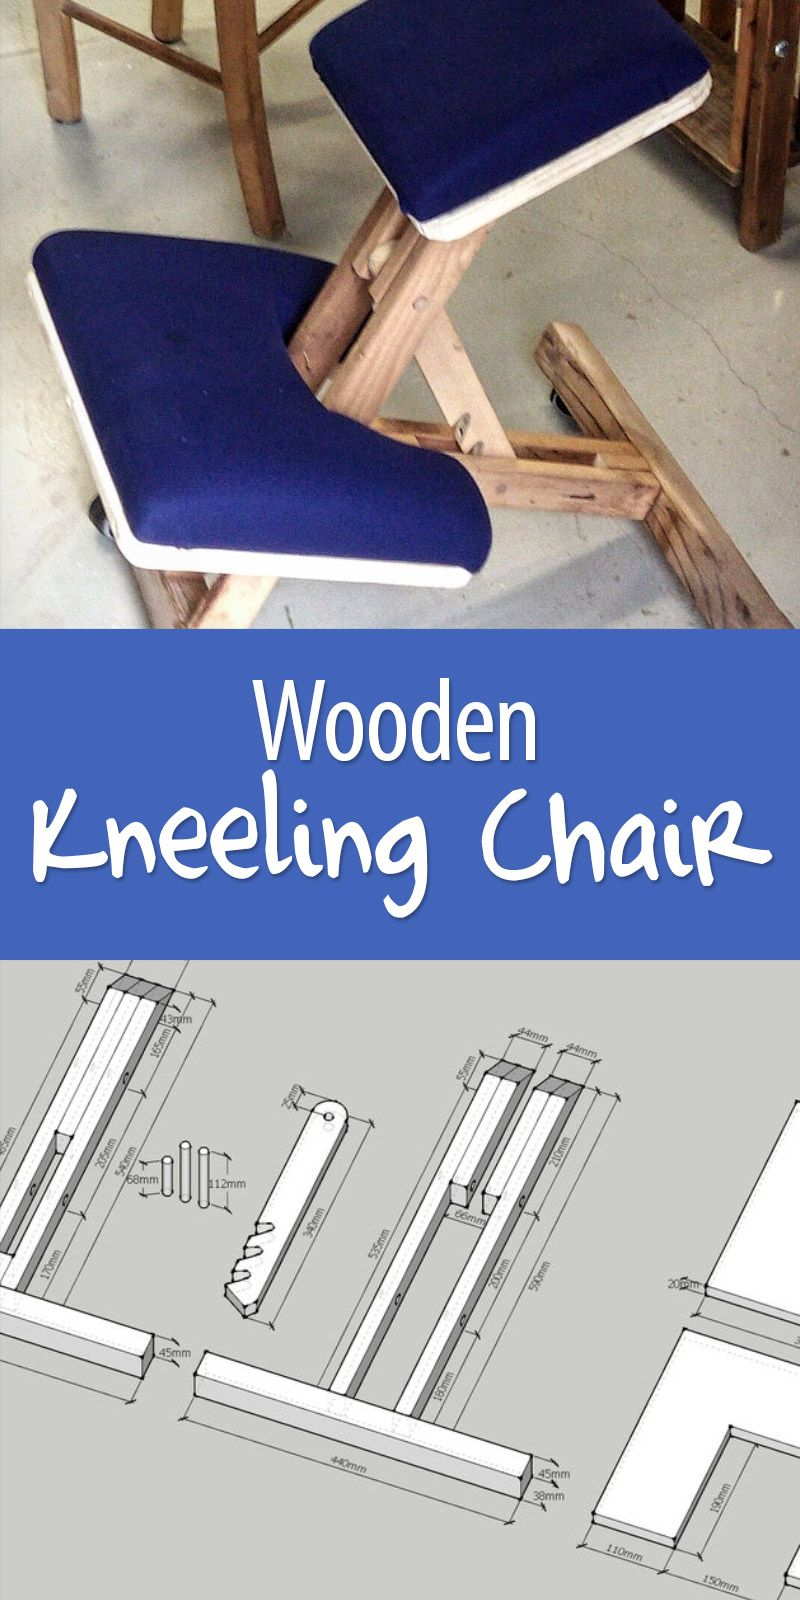 Kneeling Chair Design Plans Desk Edmonton Wooden Fun Furniture Pinterest Chairs Can Be Expensive Make Your Own To Exact Body Measurements